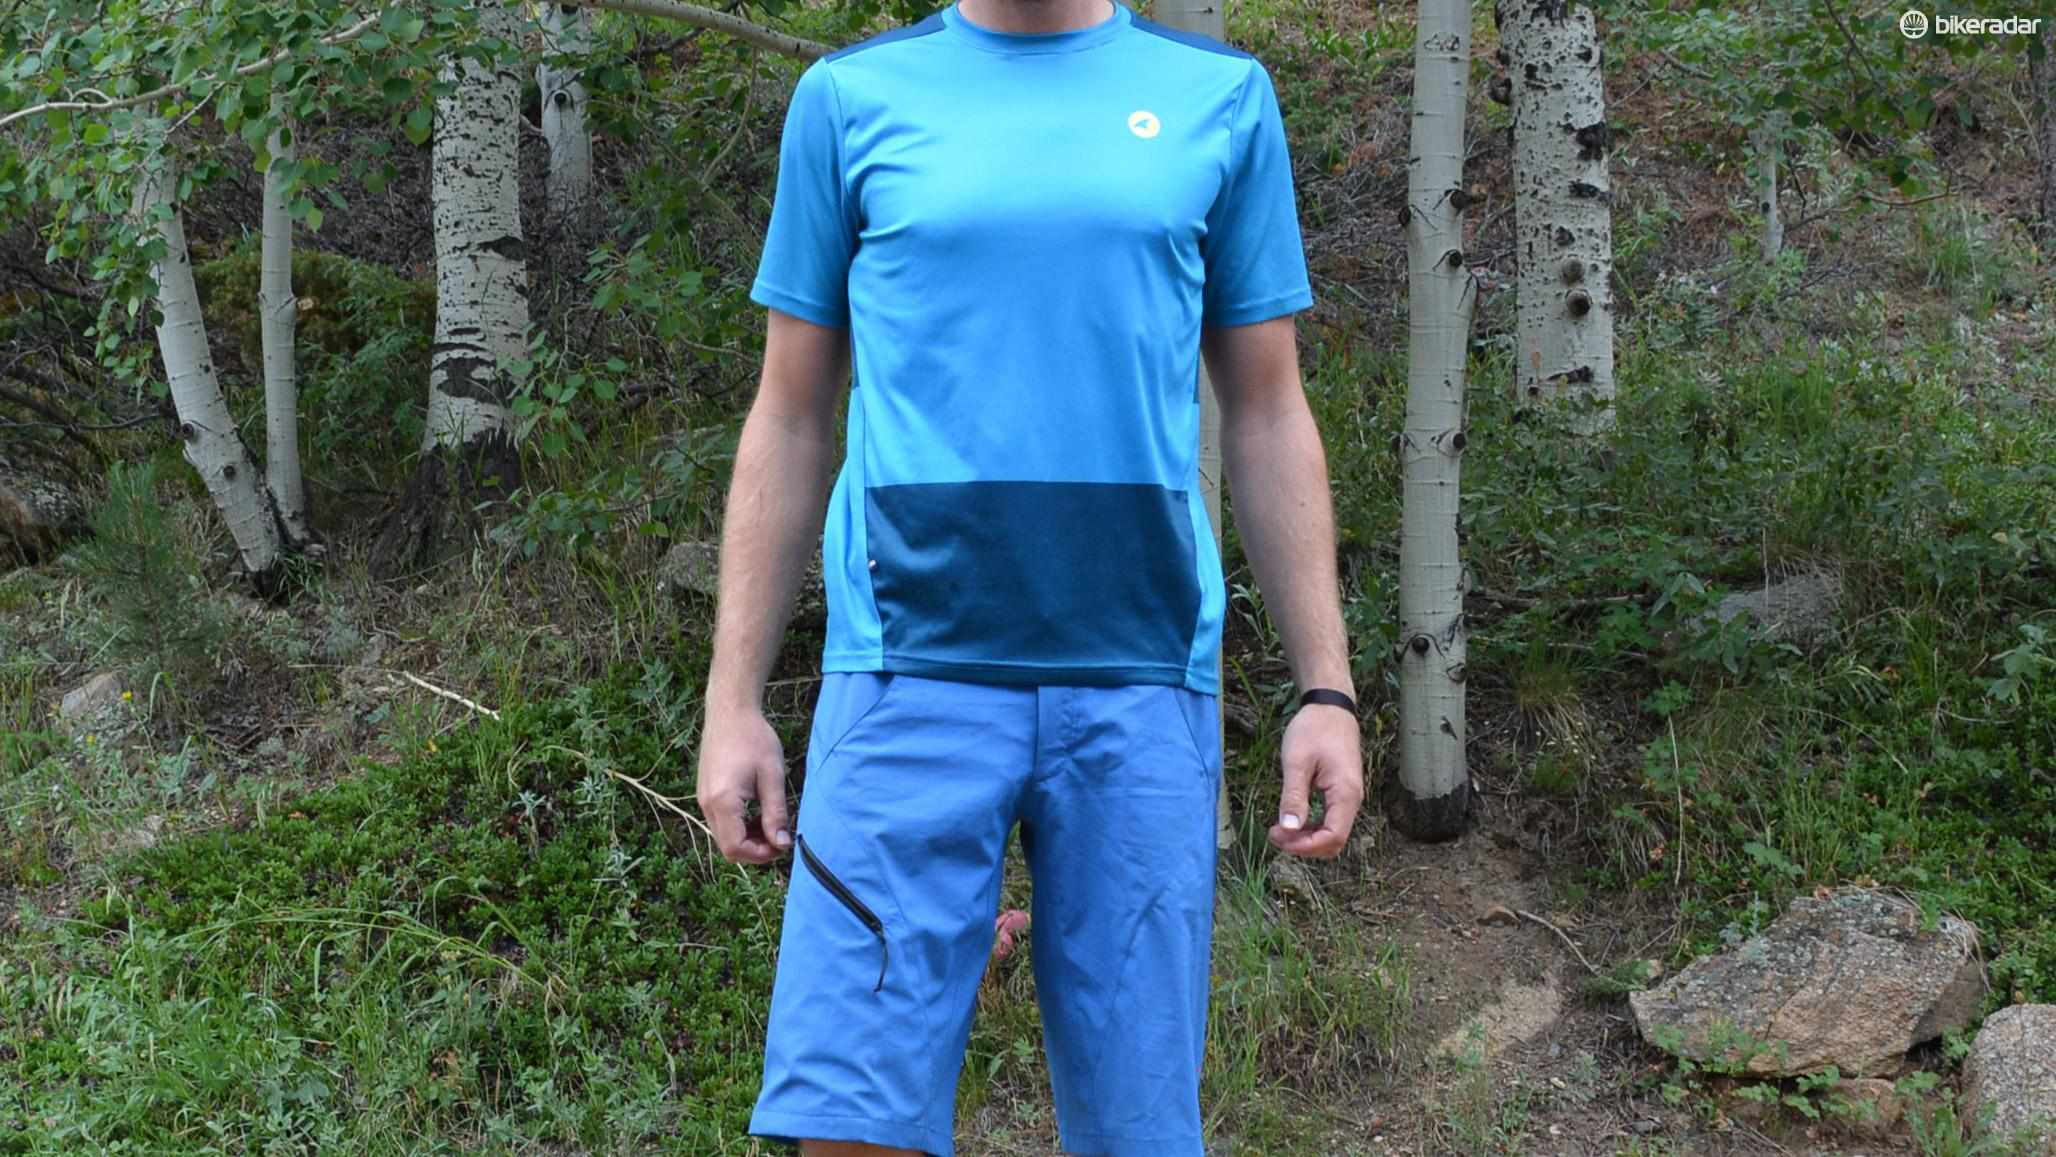 Pactimo's Apex MTB jersey is a keeper, silky soft and trim fitting